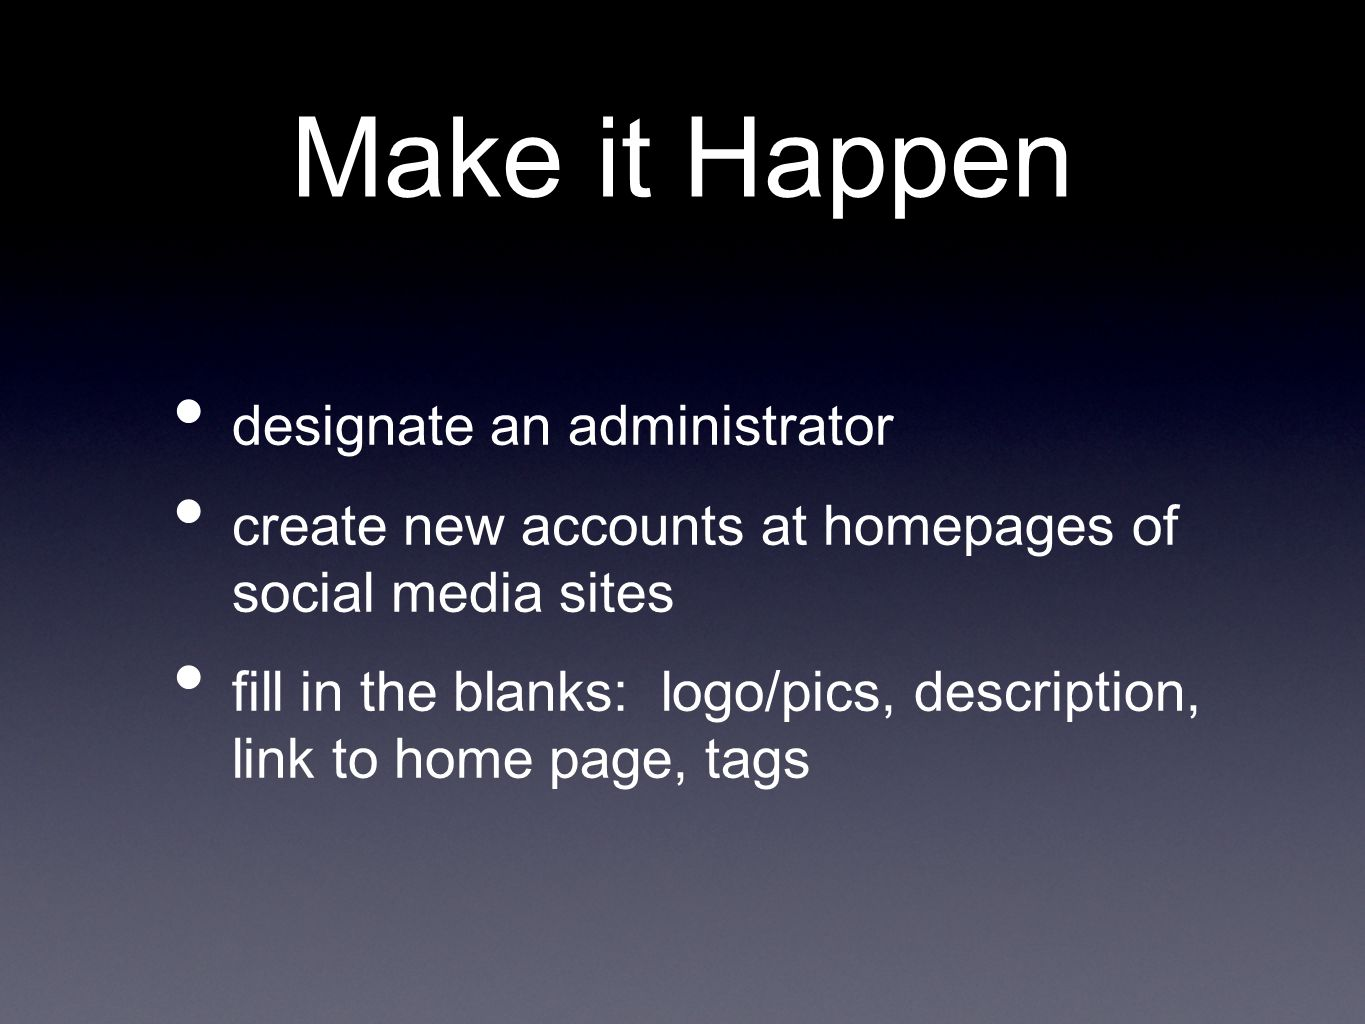 Make it Happen designate an administrator create new accounts at homepages of social media sites fill in the blanks: logo/pics, description, link to home page, tags